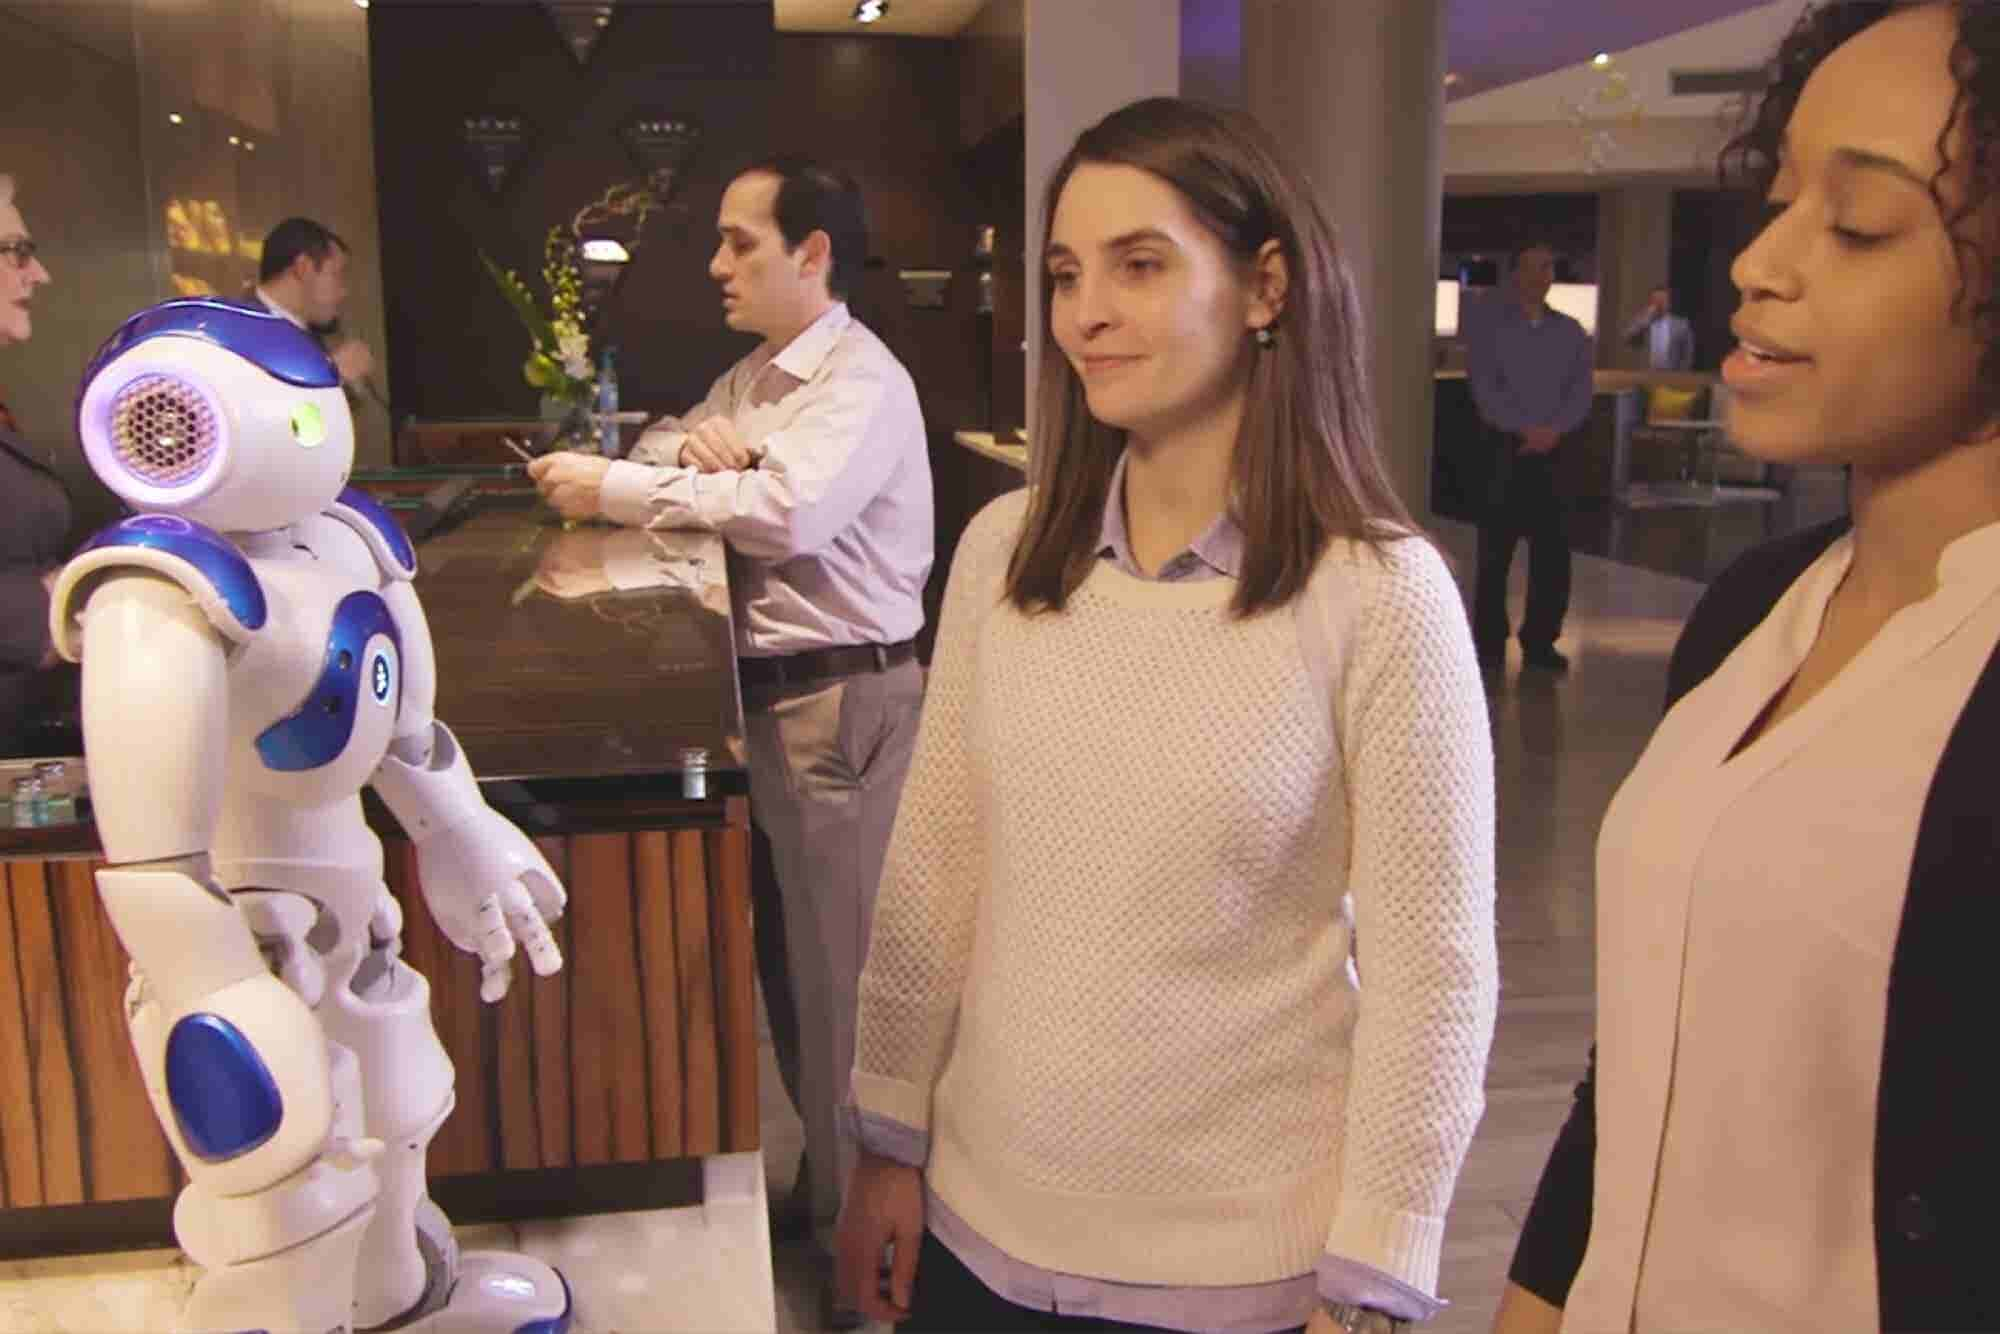 Meet Connie, the Robot Concierge at a Virginia Hilton